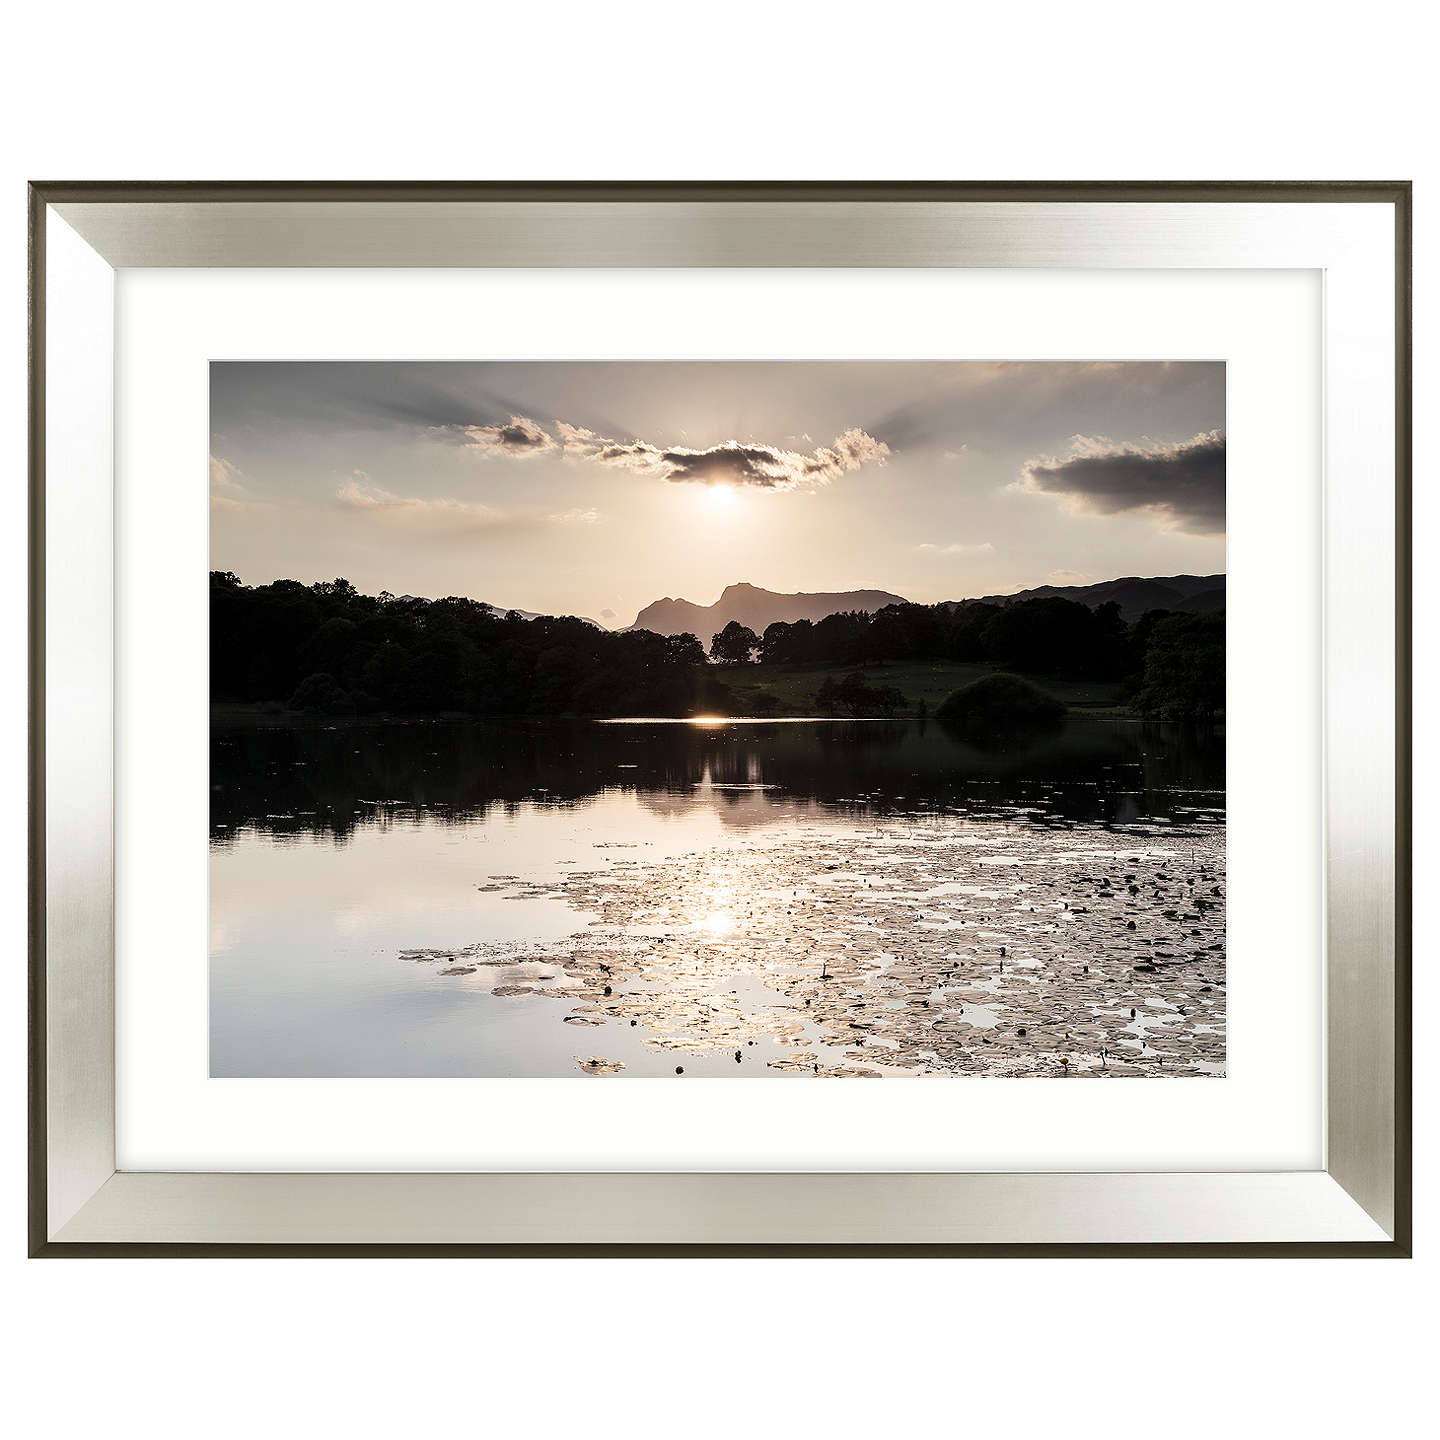 BuyMike Shepherd - Glistening Waters Embellished Framed Print, 91 x 71cm Online at johnlewis.com